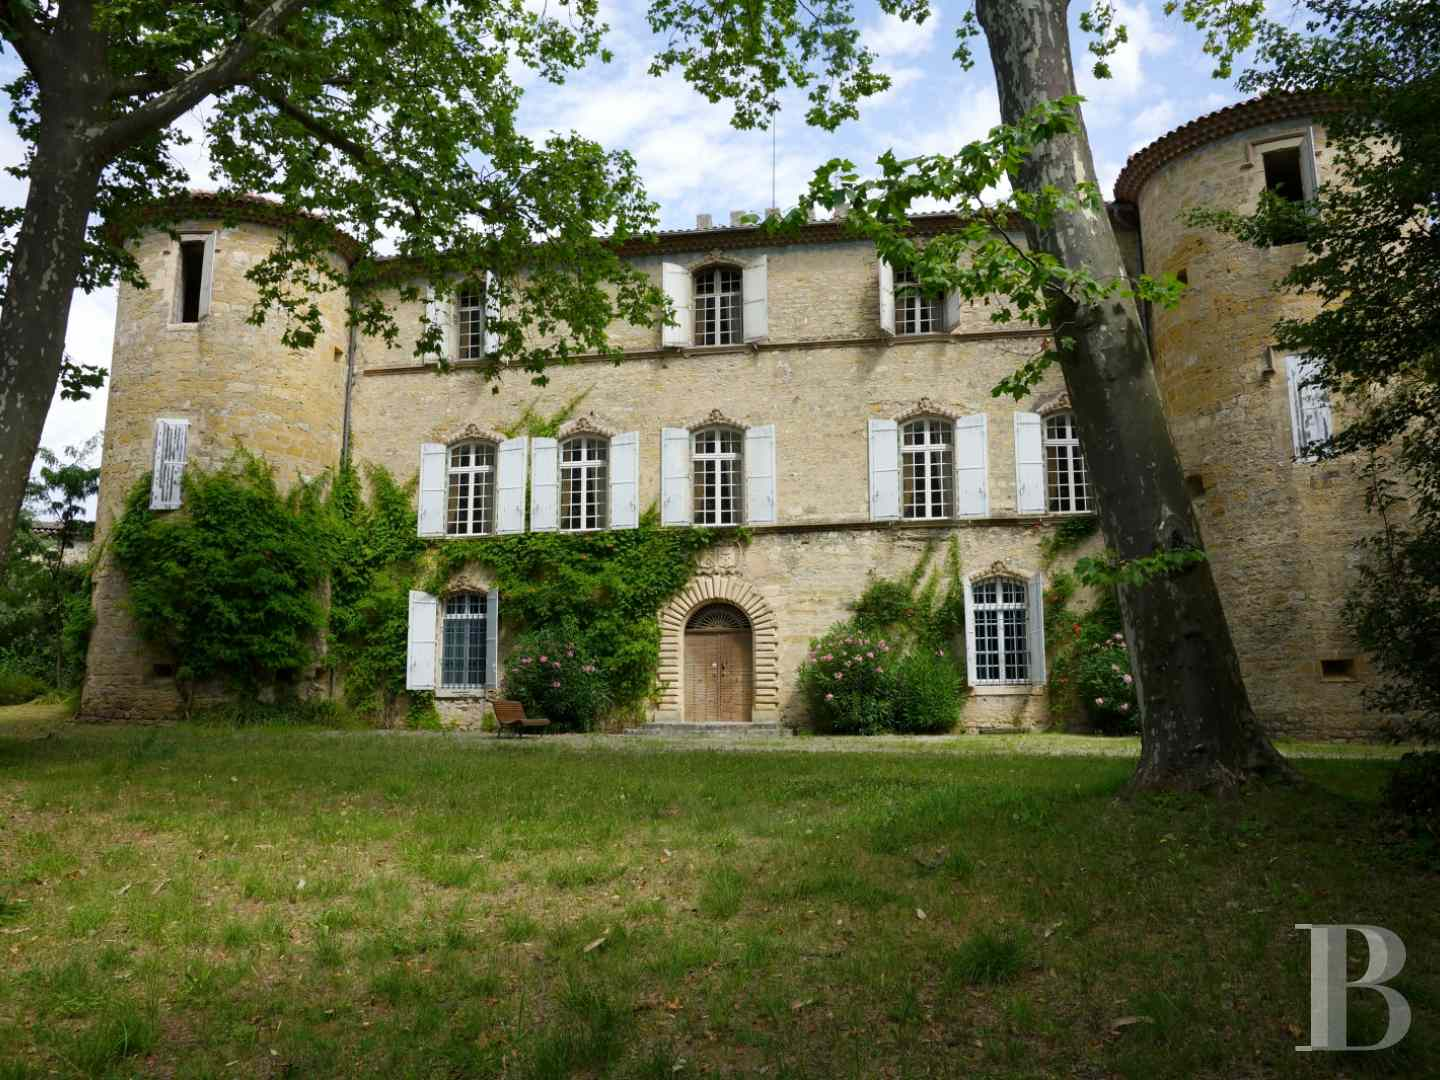 chateaux for sale France languedoc roussillon 17th century - 2 zoom